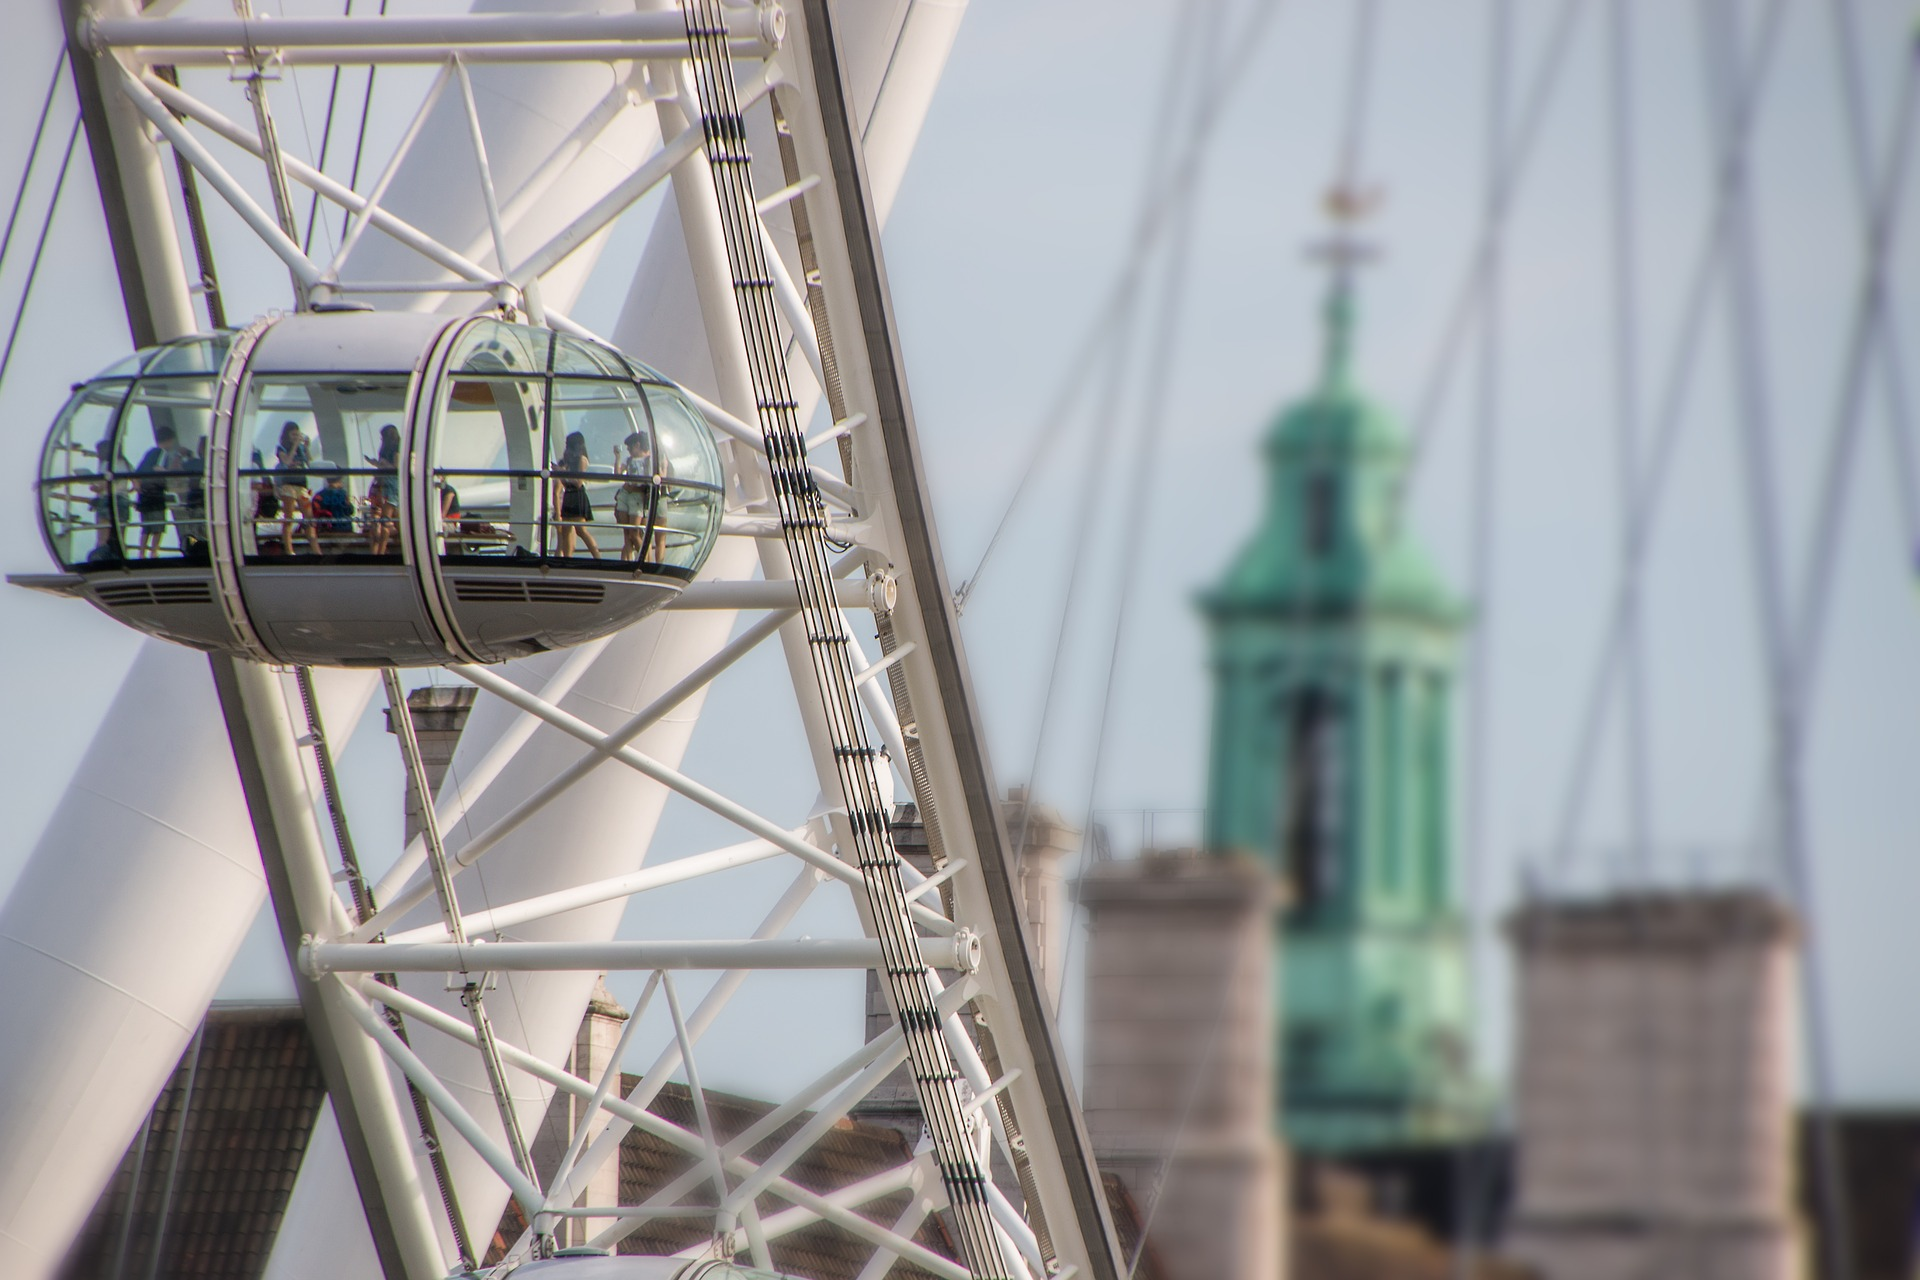 An artsy photograph of the famous London Eye, one of the most recognisable landmarks in London